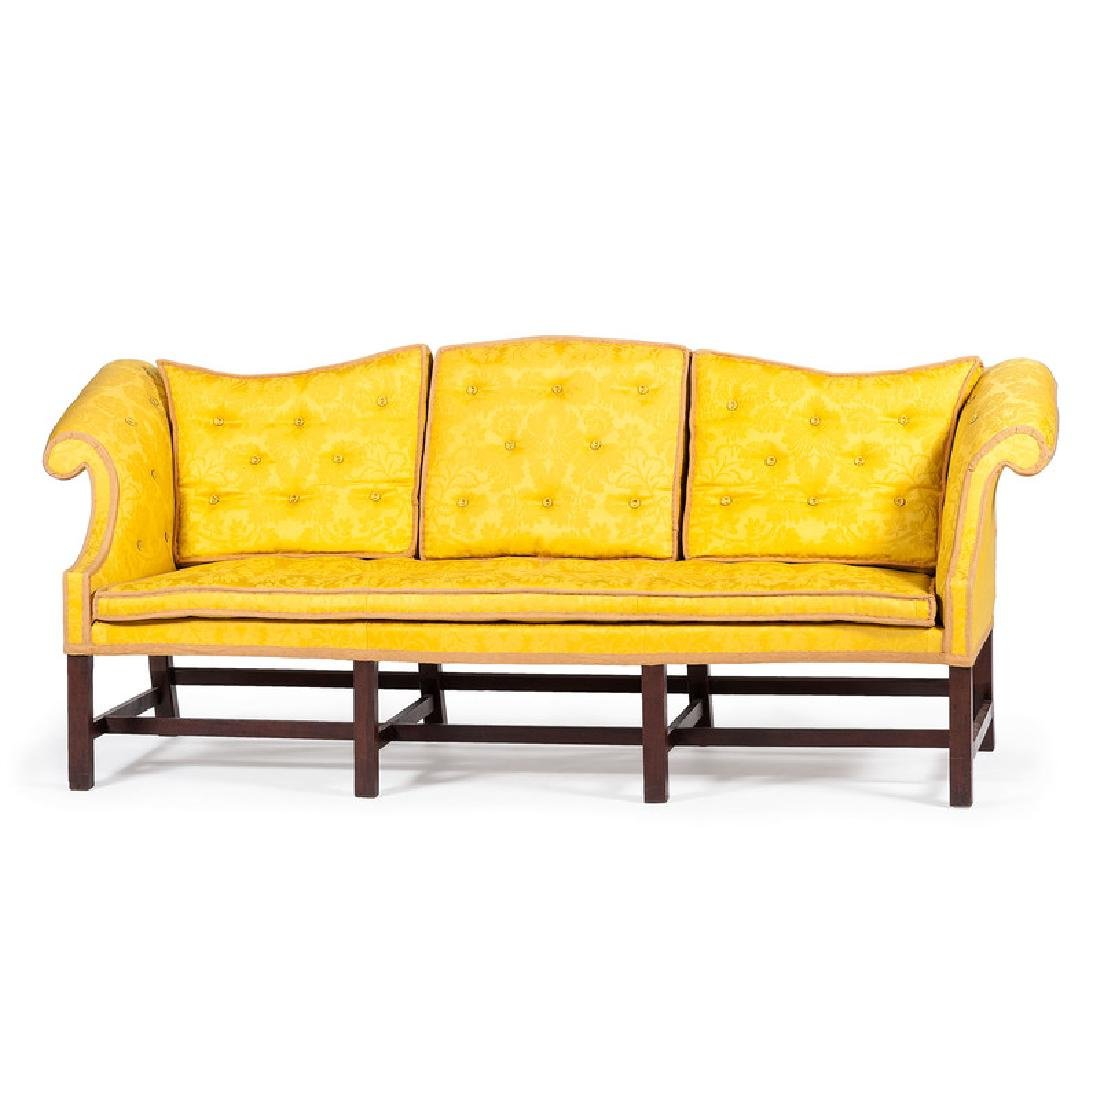 Rare Chippendale Camelback Sofa With Removable Back